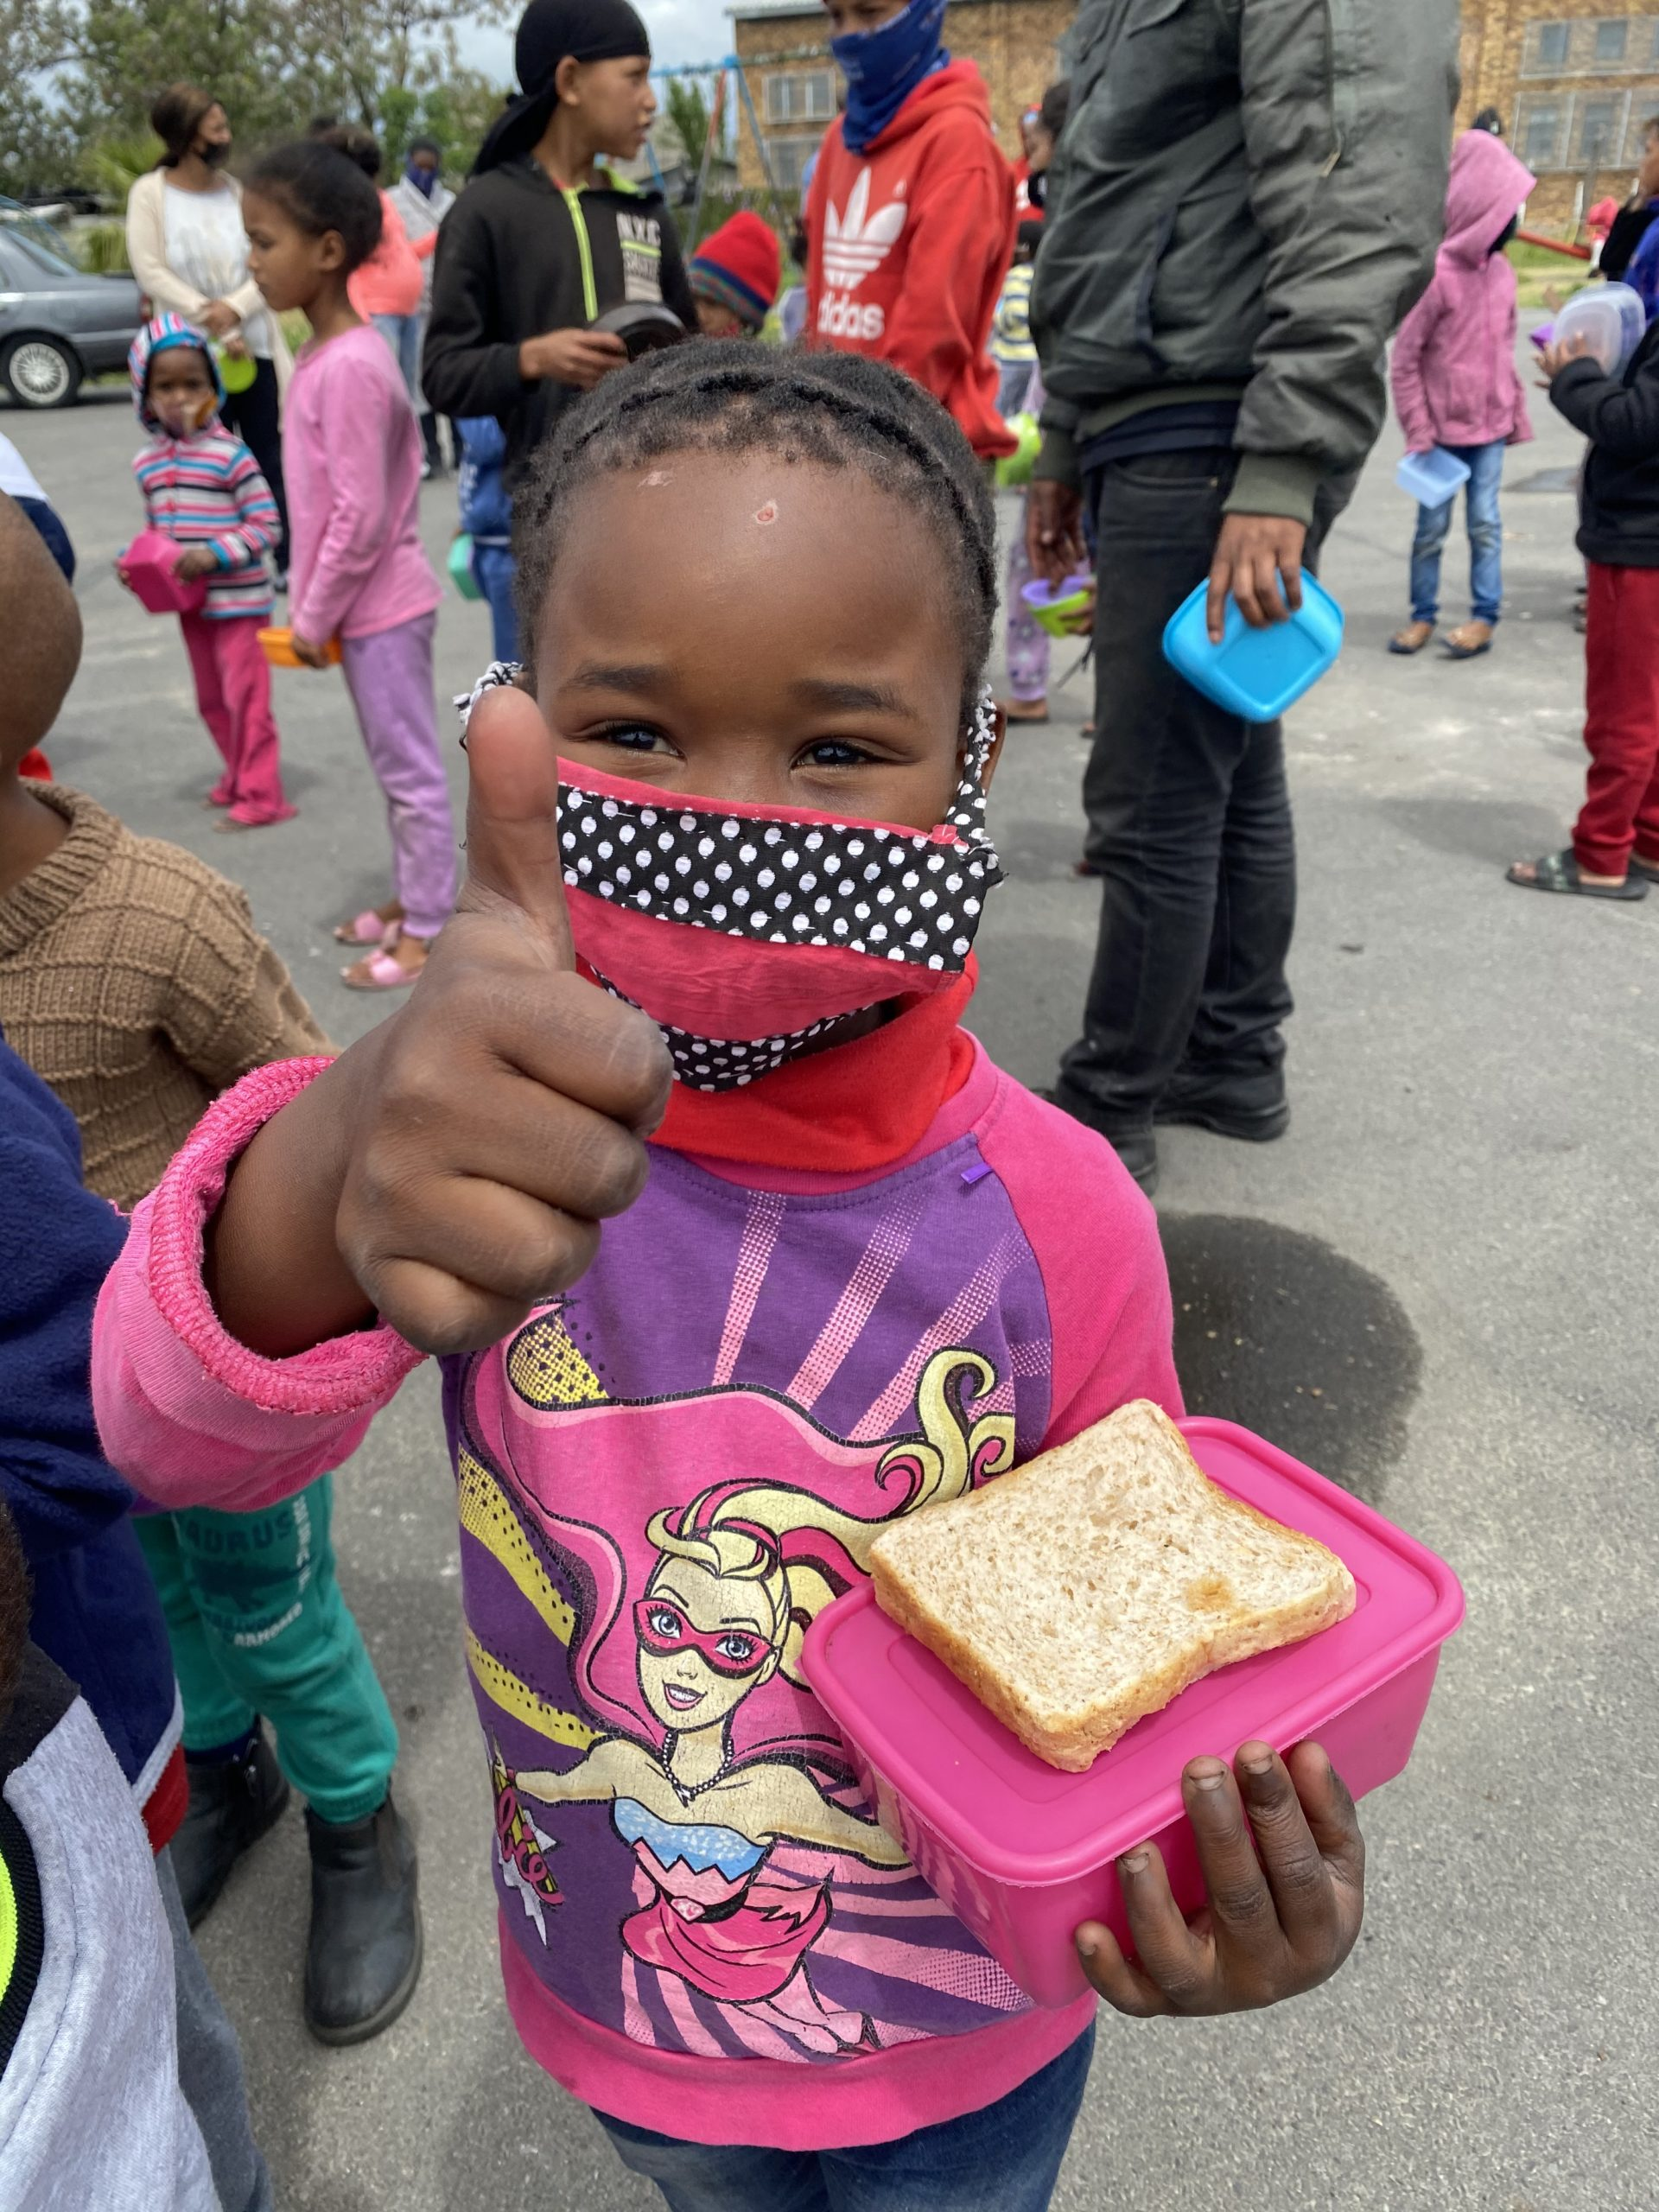 Child in facemask and pink superhero sweater gives a thumbs up to the camera, holding a sandwich